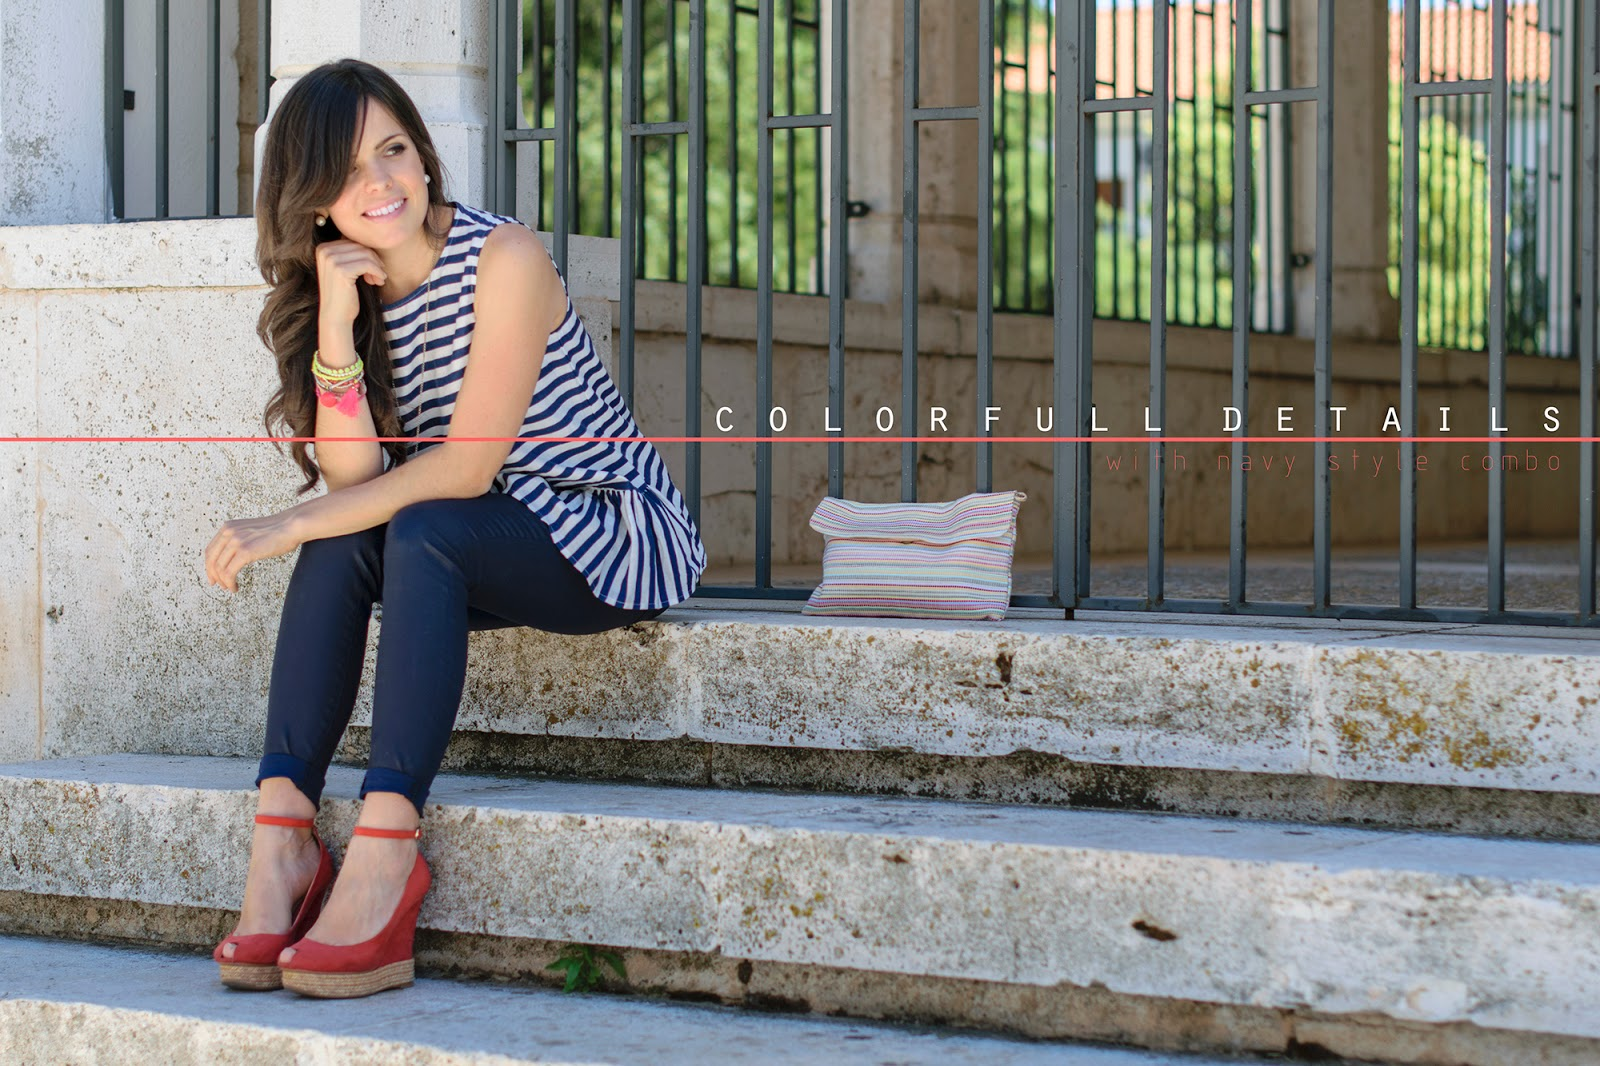 Total look Zara de estilo navy con detalles en color coral